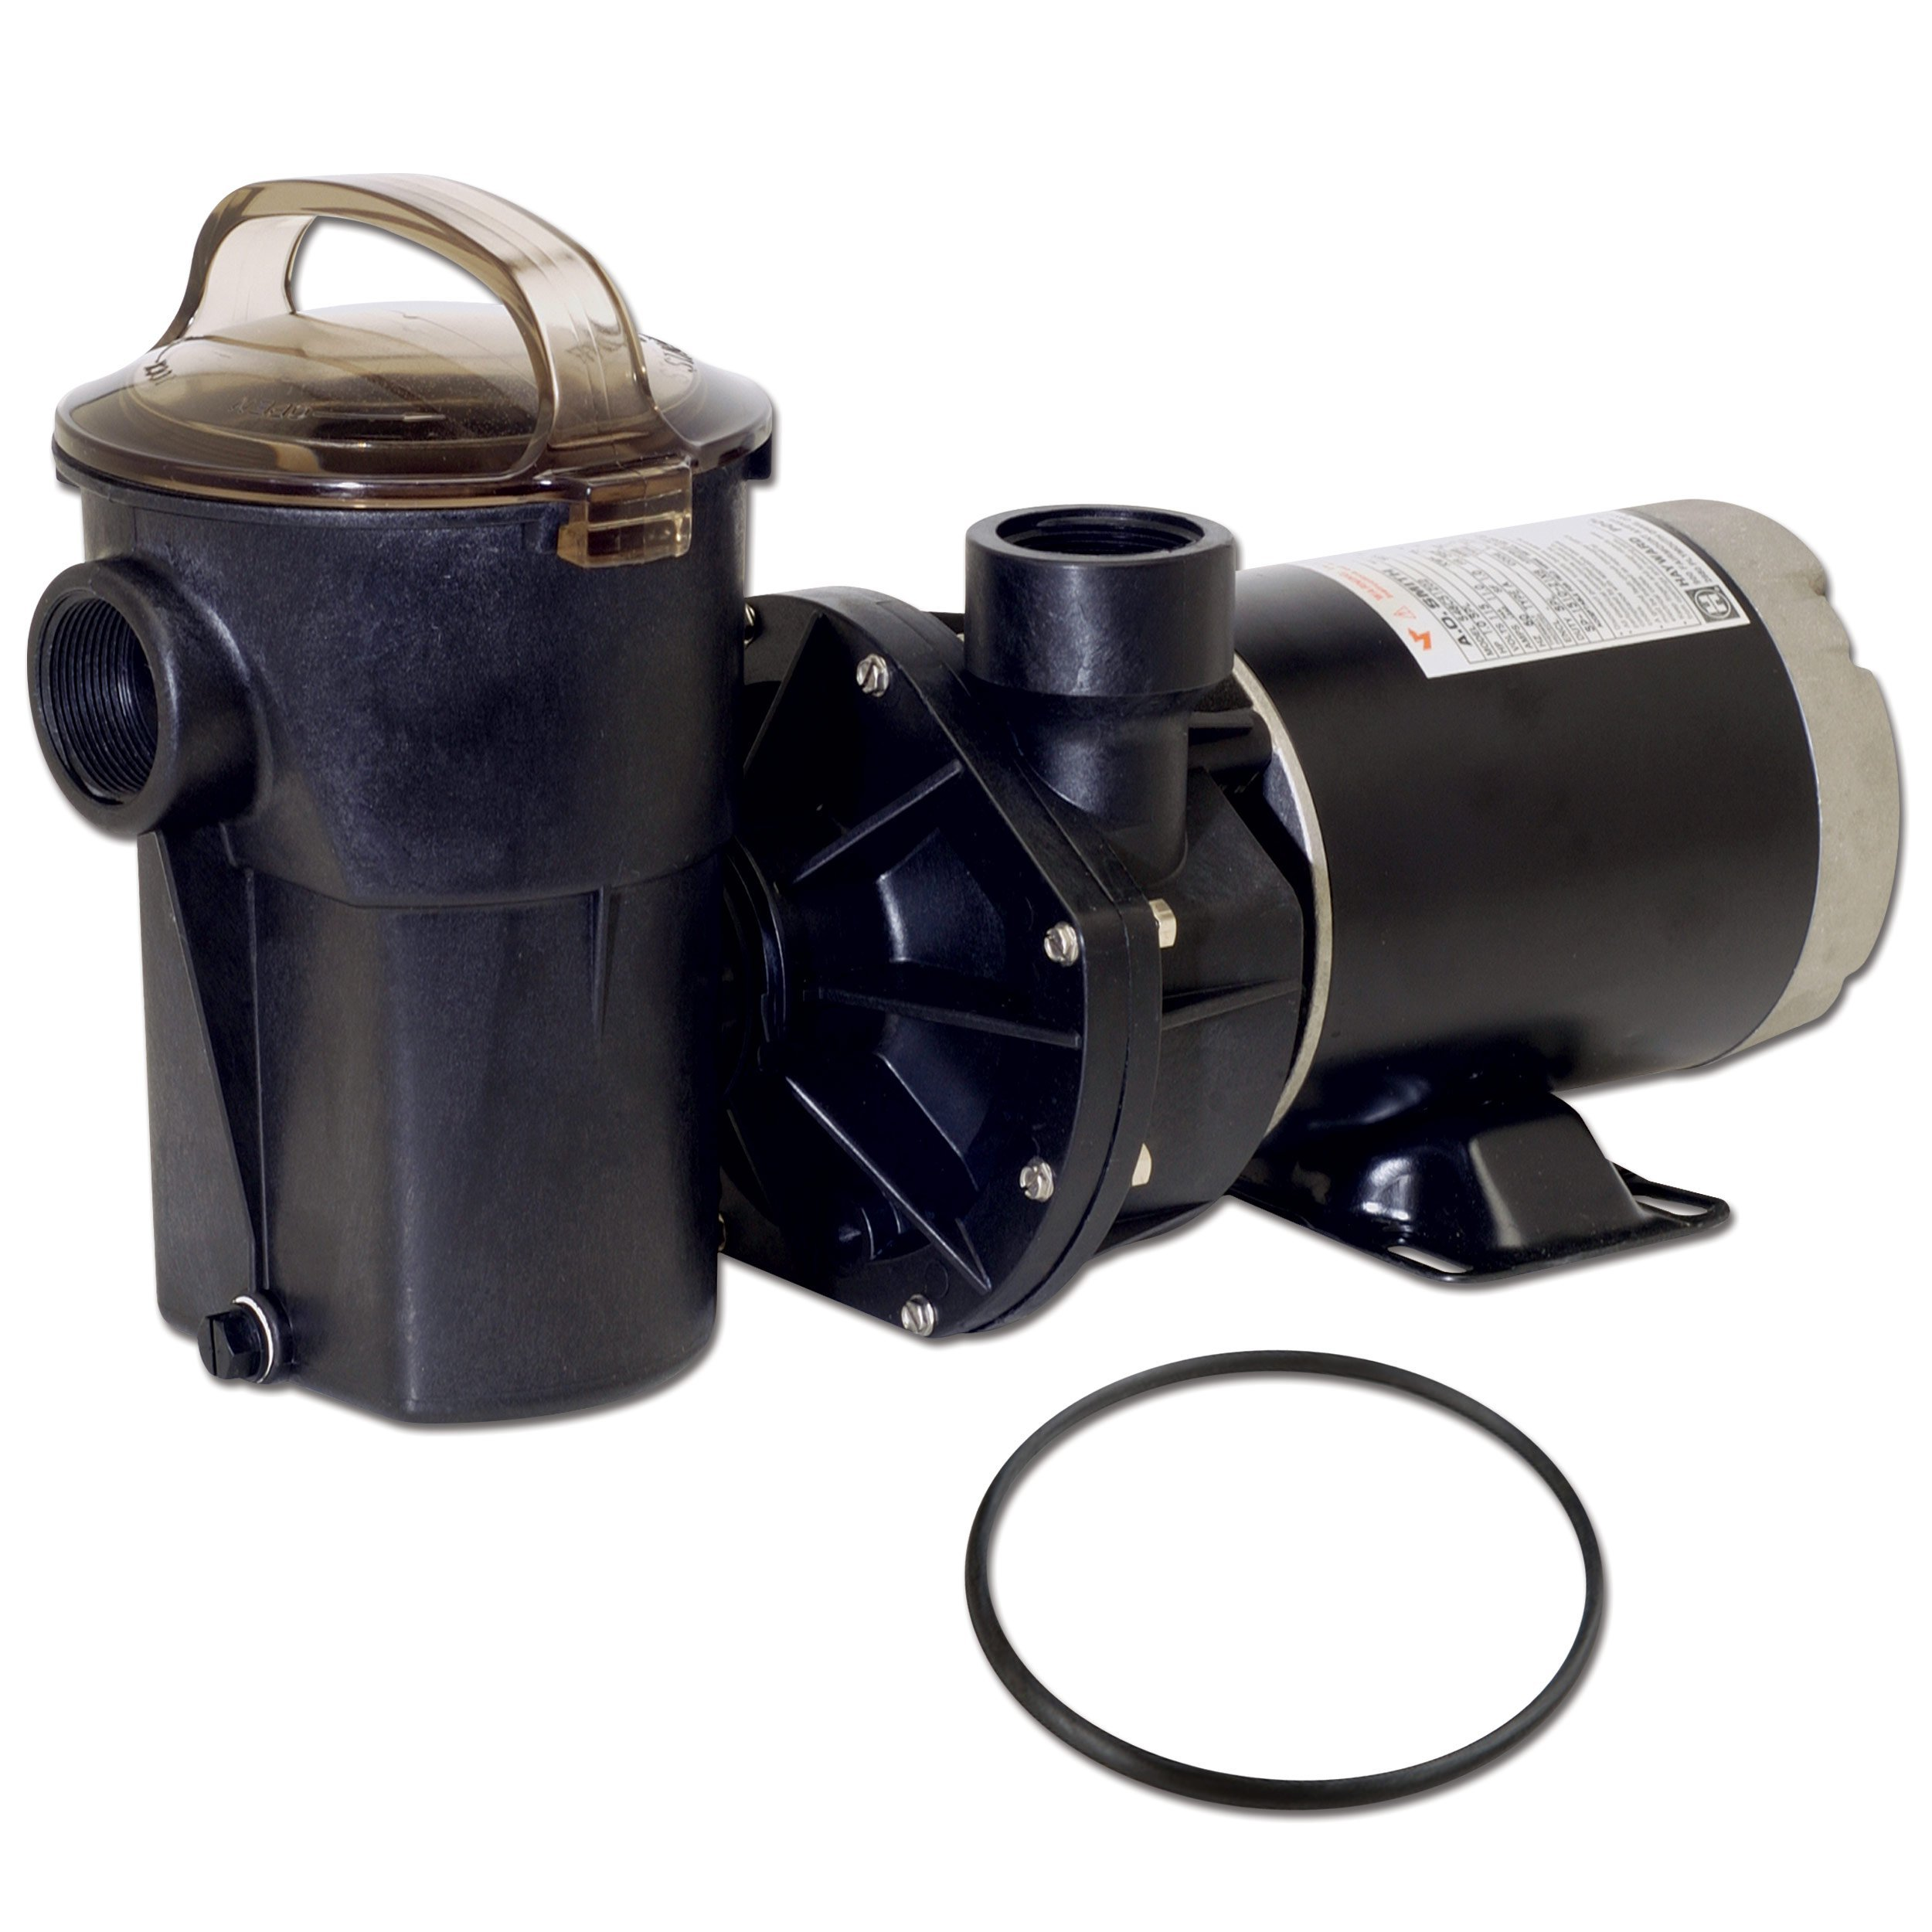 Hayward SP1580 Power-Flo LX Series 1-Horsepower Pool Pump with Cord and Replacement Lid O-Ring - 2 Item Bundle